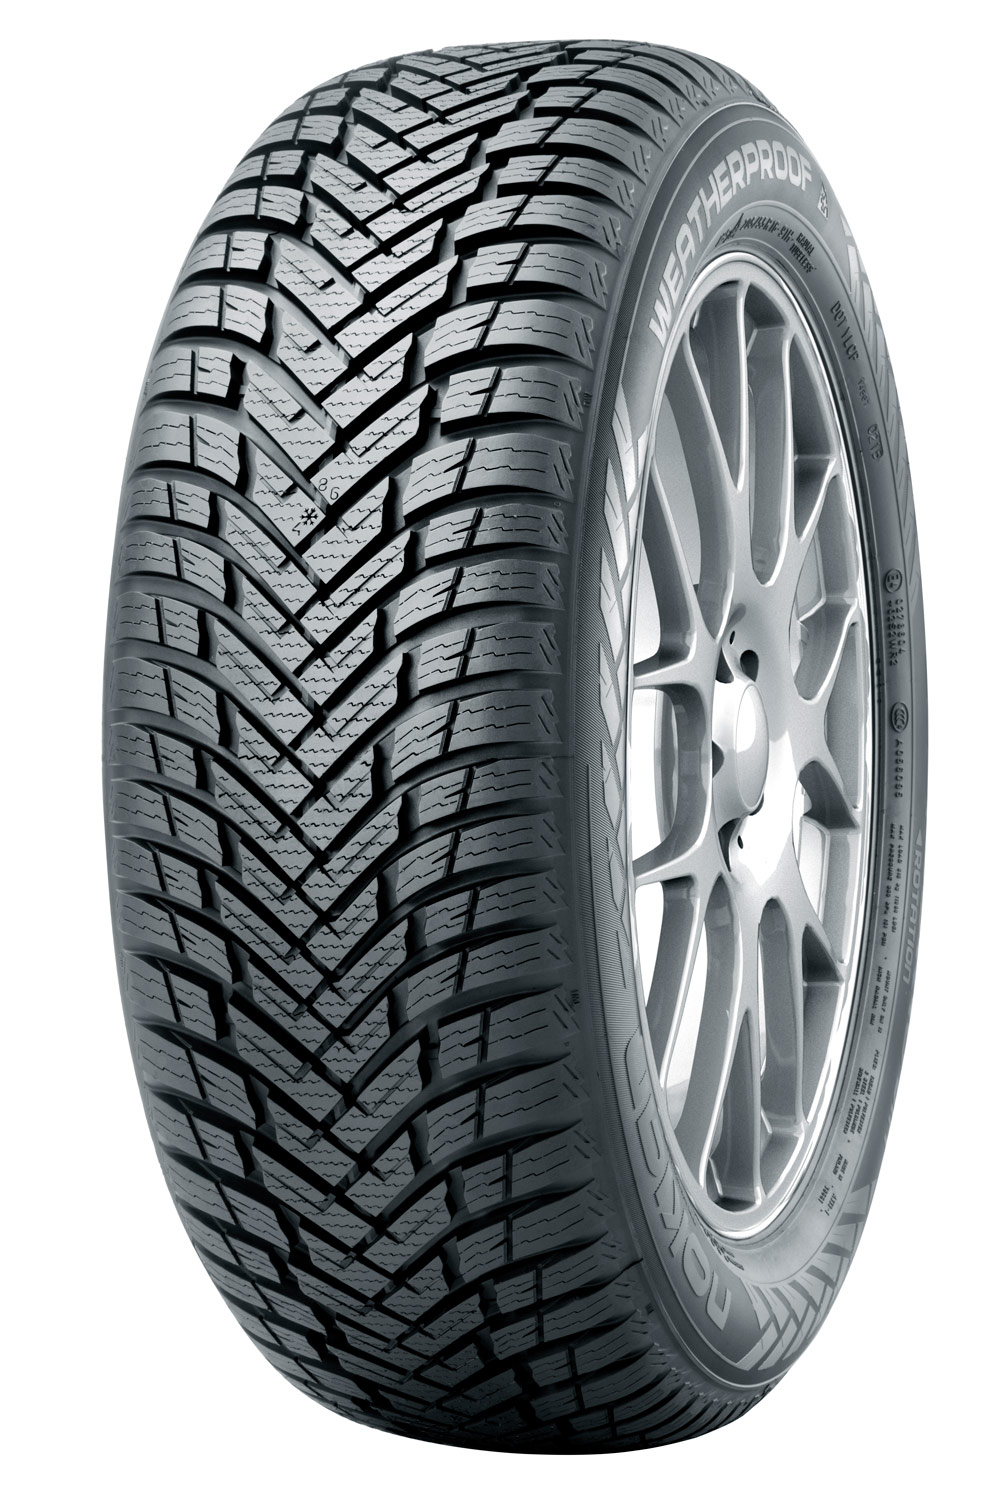 Gomme Nuove Dunlop 225/50 R17 94H WIN SPORT 5 M+S pneumatici nuovi Invernale